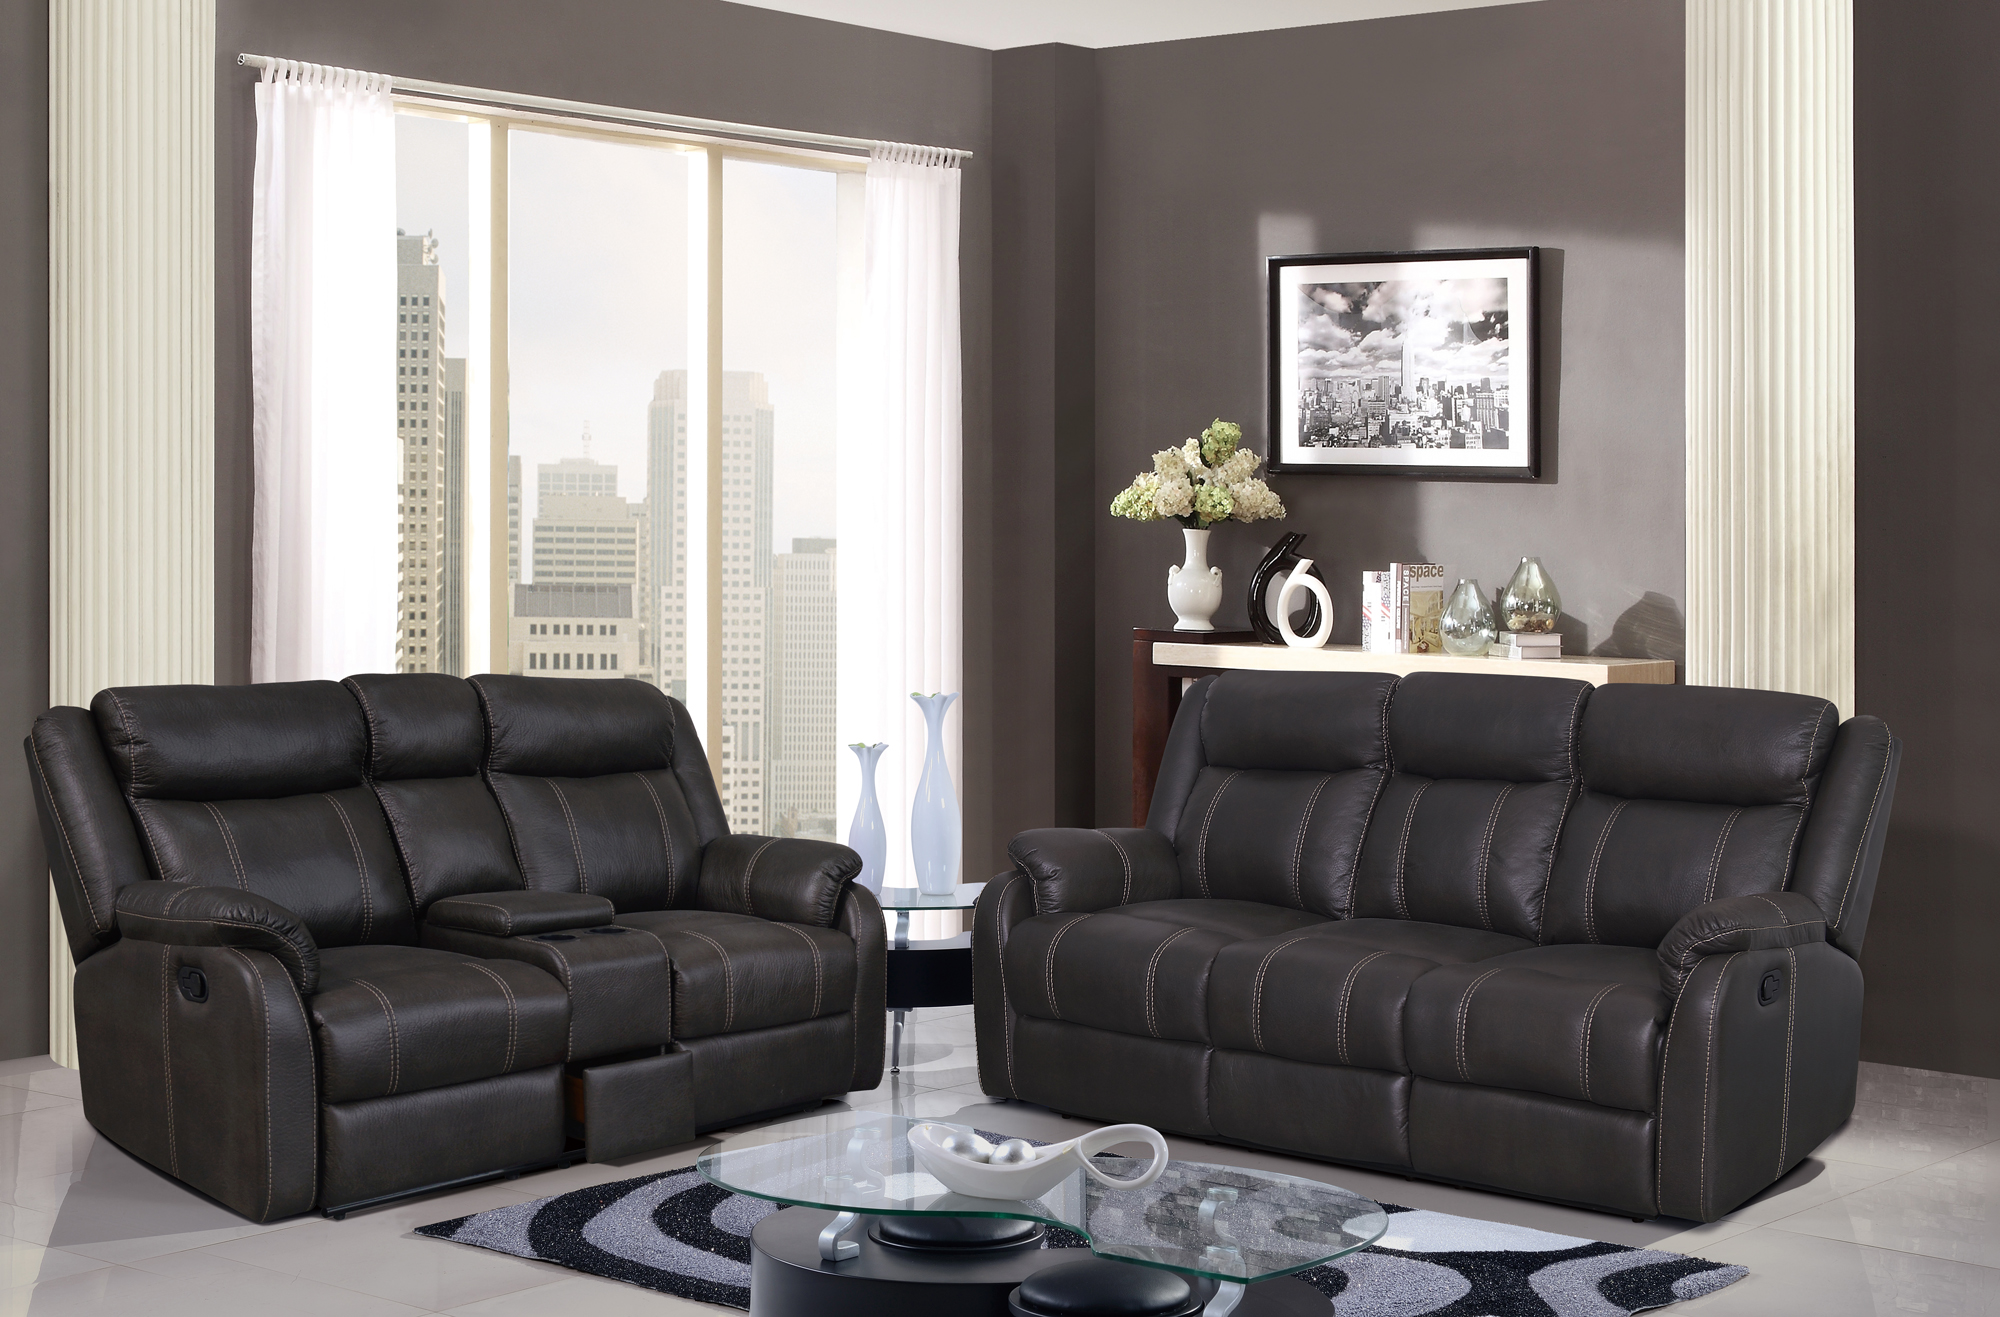 U7303C Charcoal Printed Fabric Reclining Sofa w DDT & DR by Global